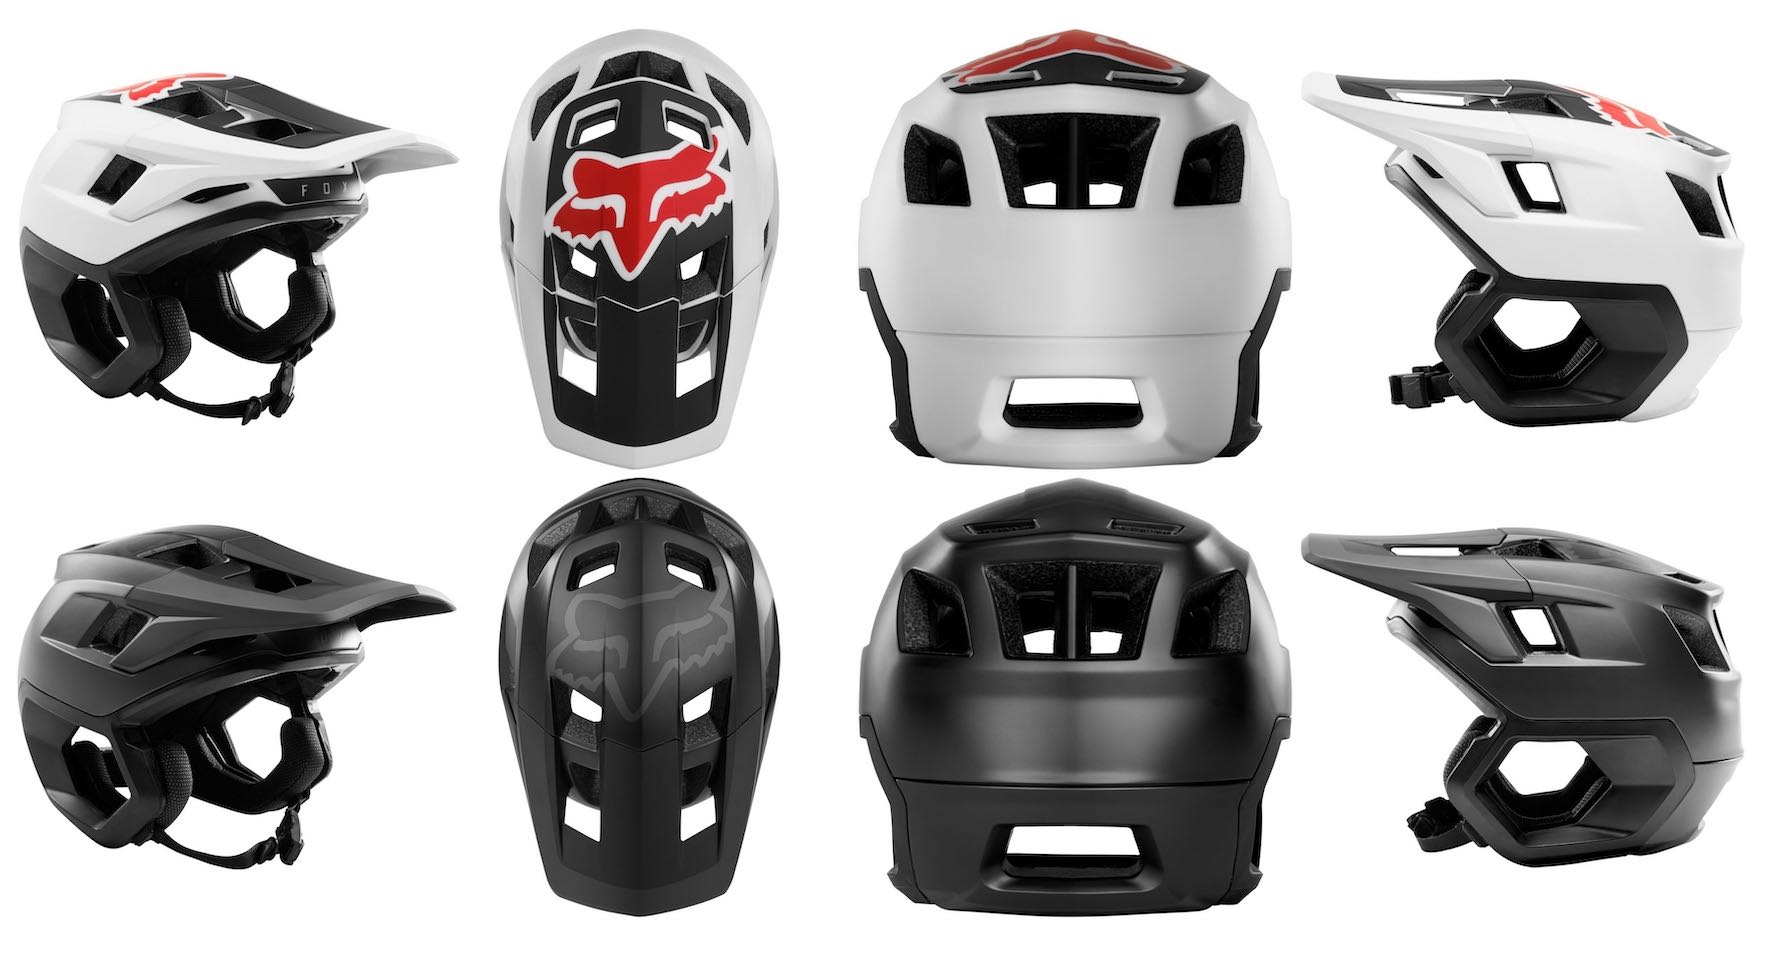 The Fox Dropframe Helmet is available in white and black